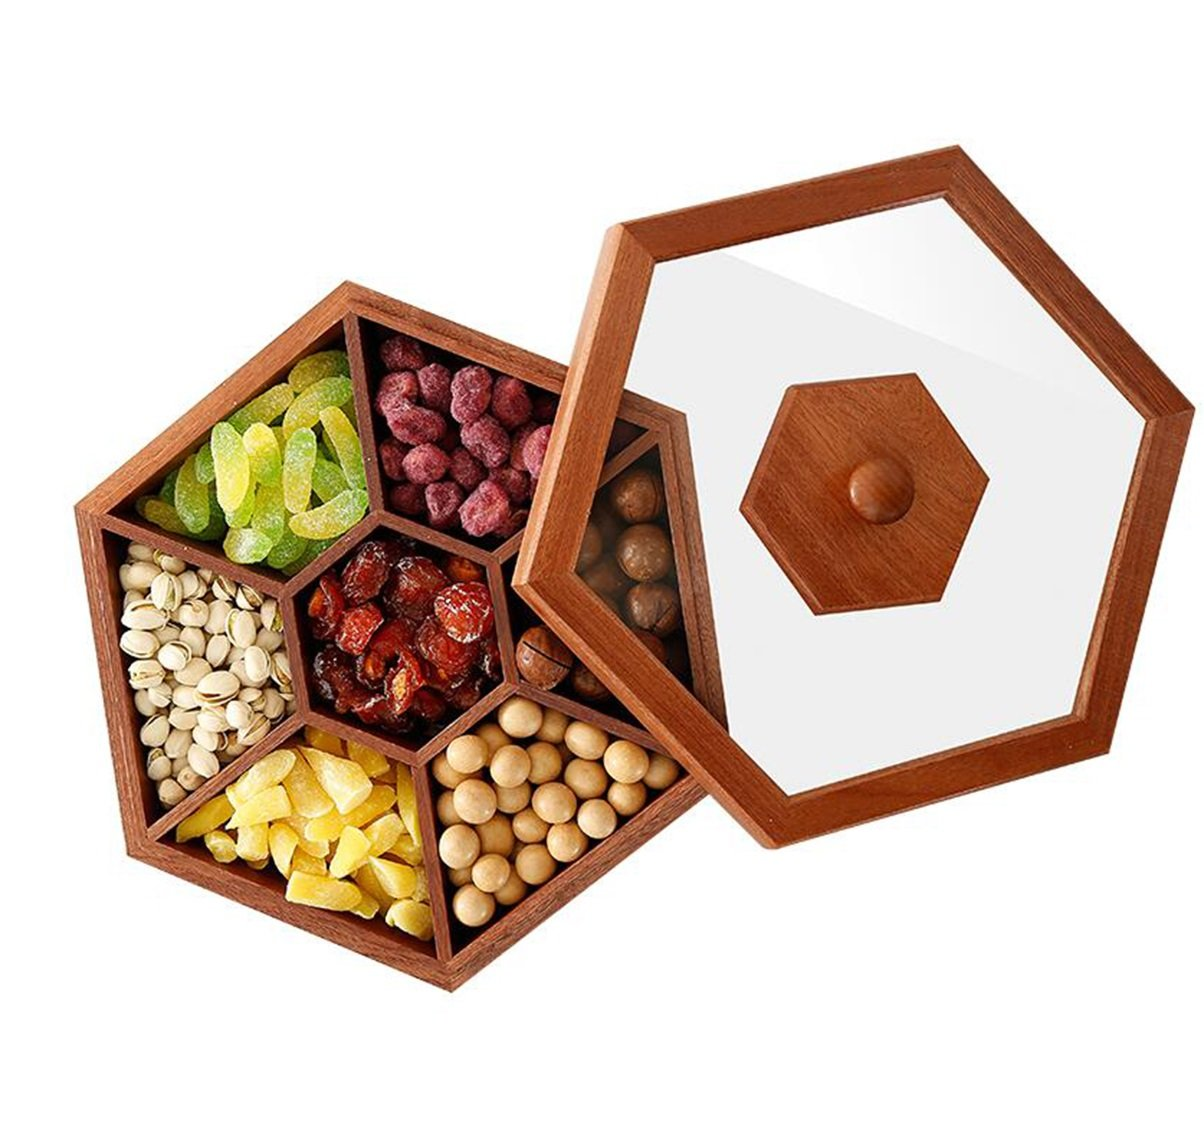 Wooden Fruit Plate Chinese Retro Home Living Room Snack Plate Dried Fruit Plate Candy Snack Plate Fruit Tray Storage Box 30269cm